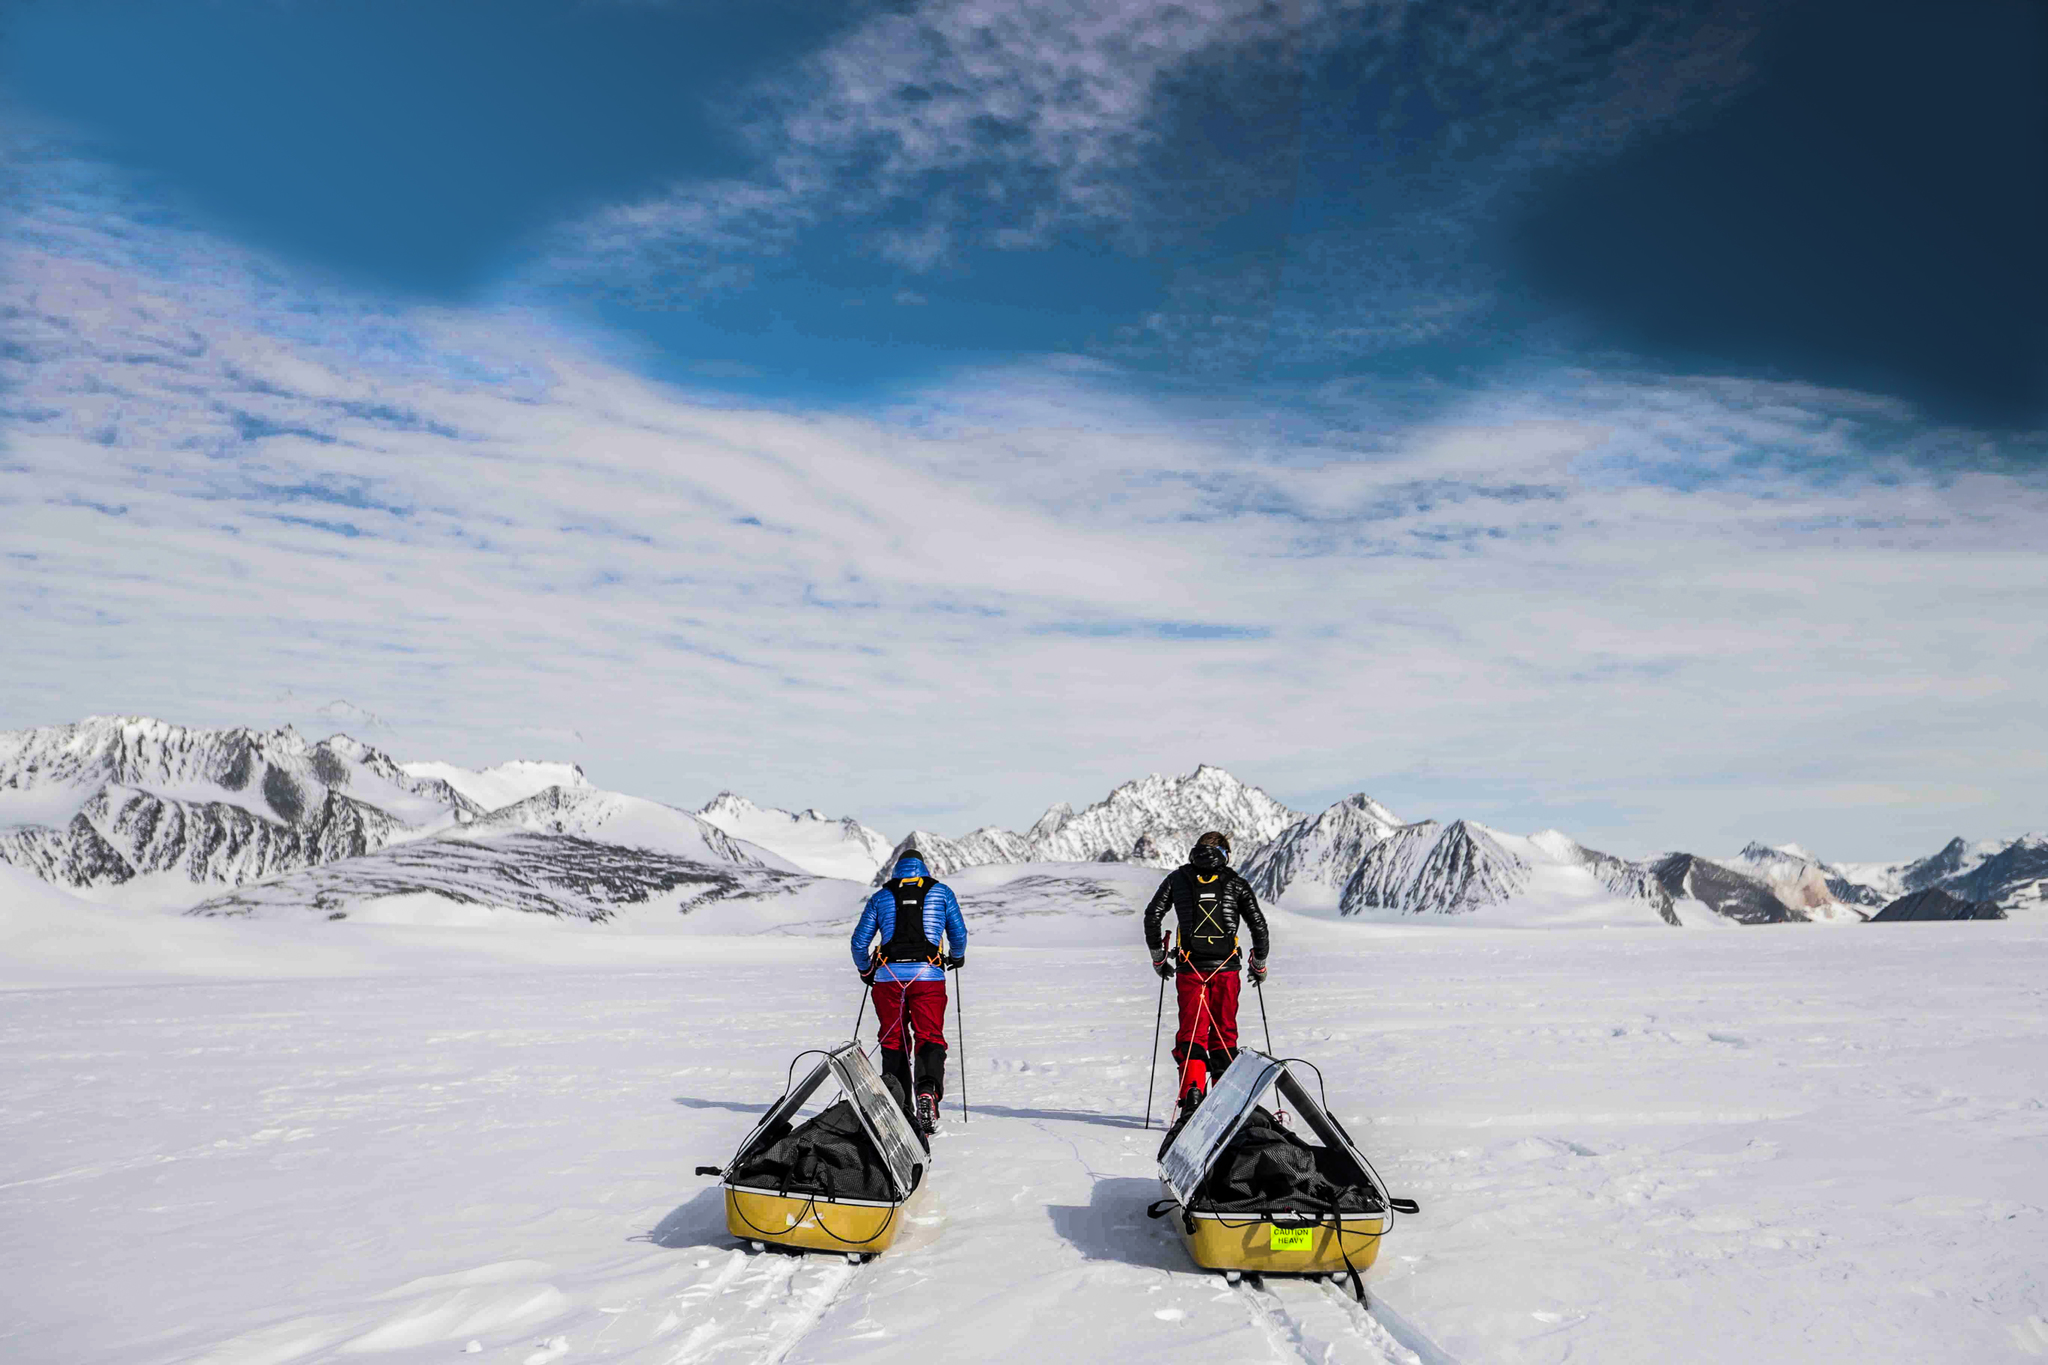 Robert and Barney Swan Begin Walking on the World's First Expedition to the South Pole Using Only Renewable